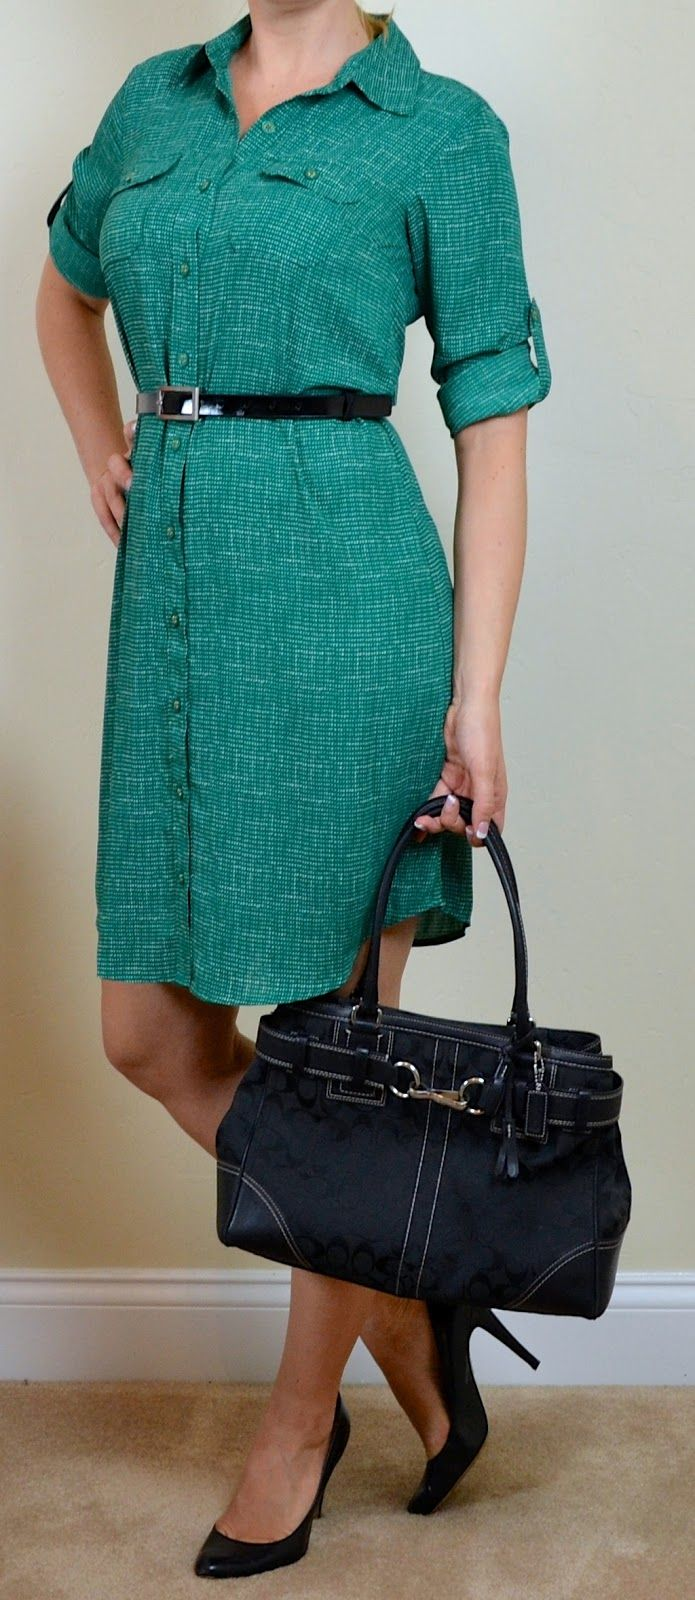 Outfit Posts: outfit post: Cabi green shirt dress, black pumps